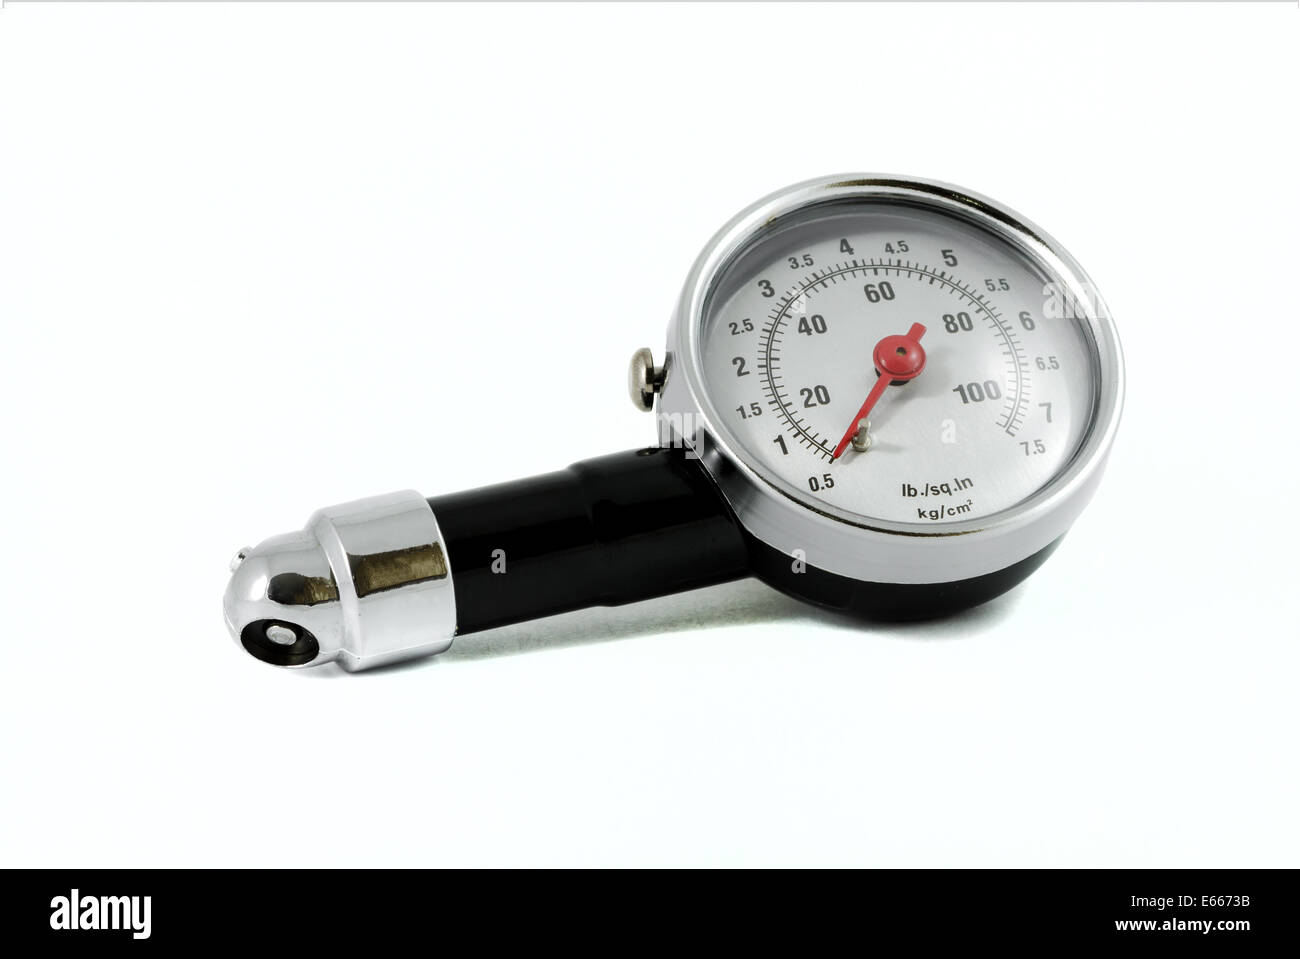 Tire Pressure Gauge isolated over white background - Stock Image